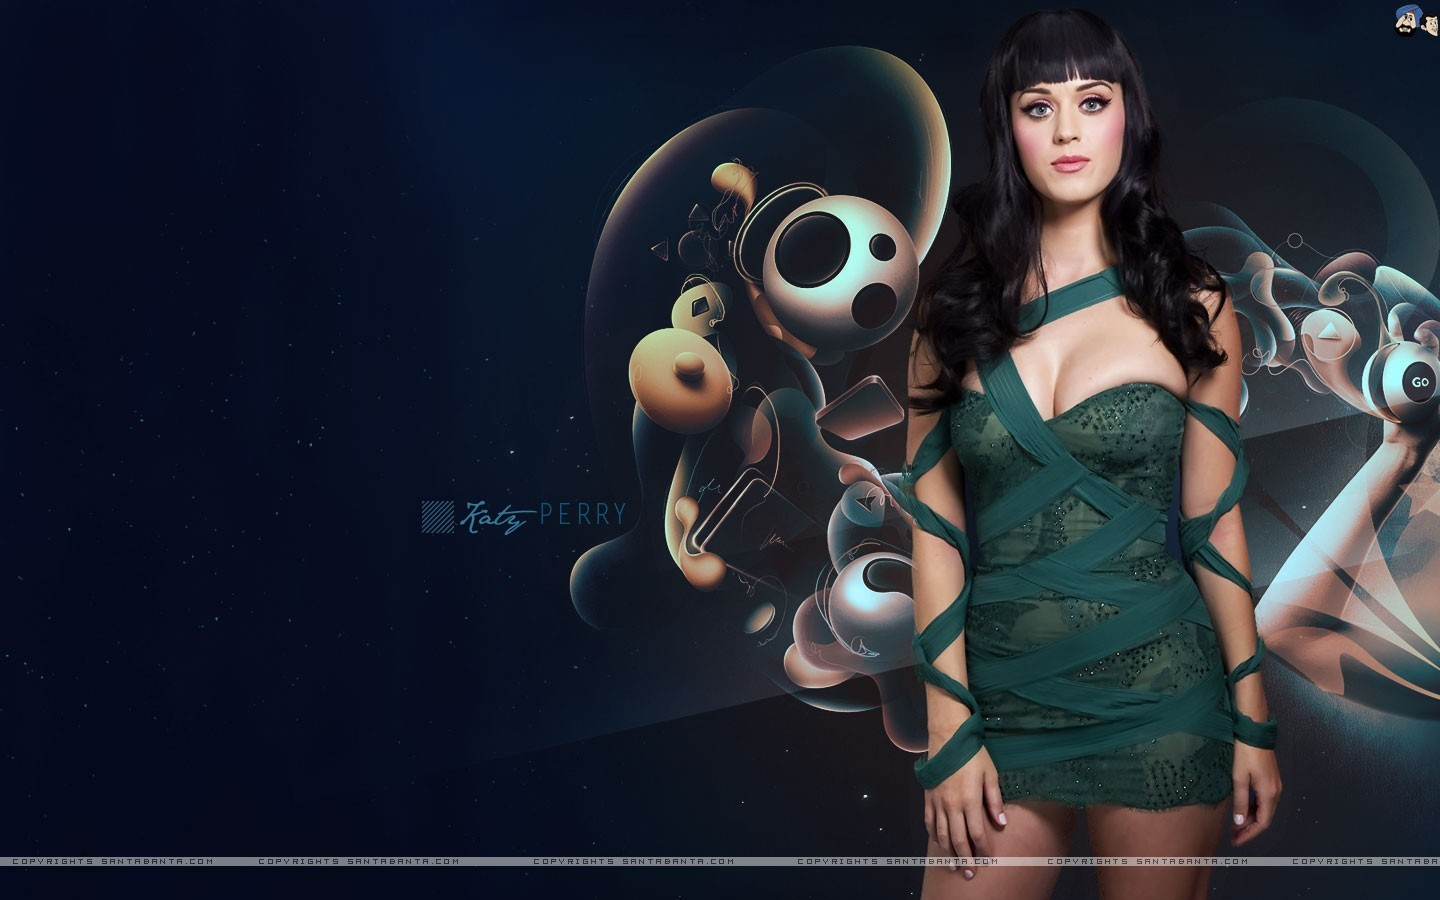 Katy Perry Wallpaper on Katy Perry Hd Wallpaper   Celebrity   Actress   826000